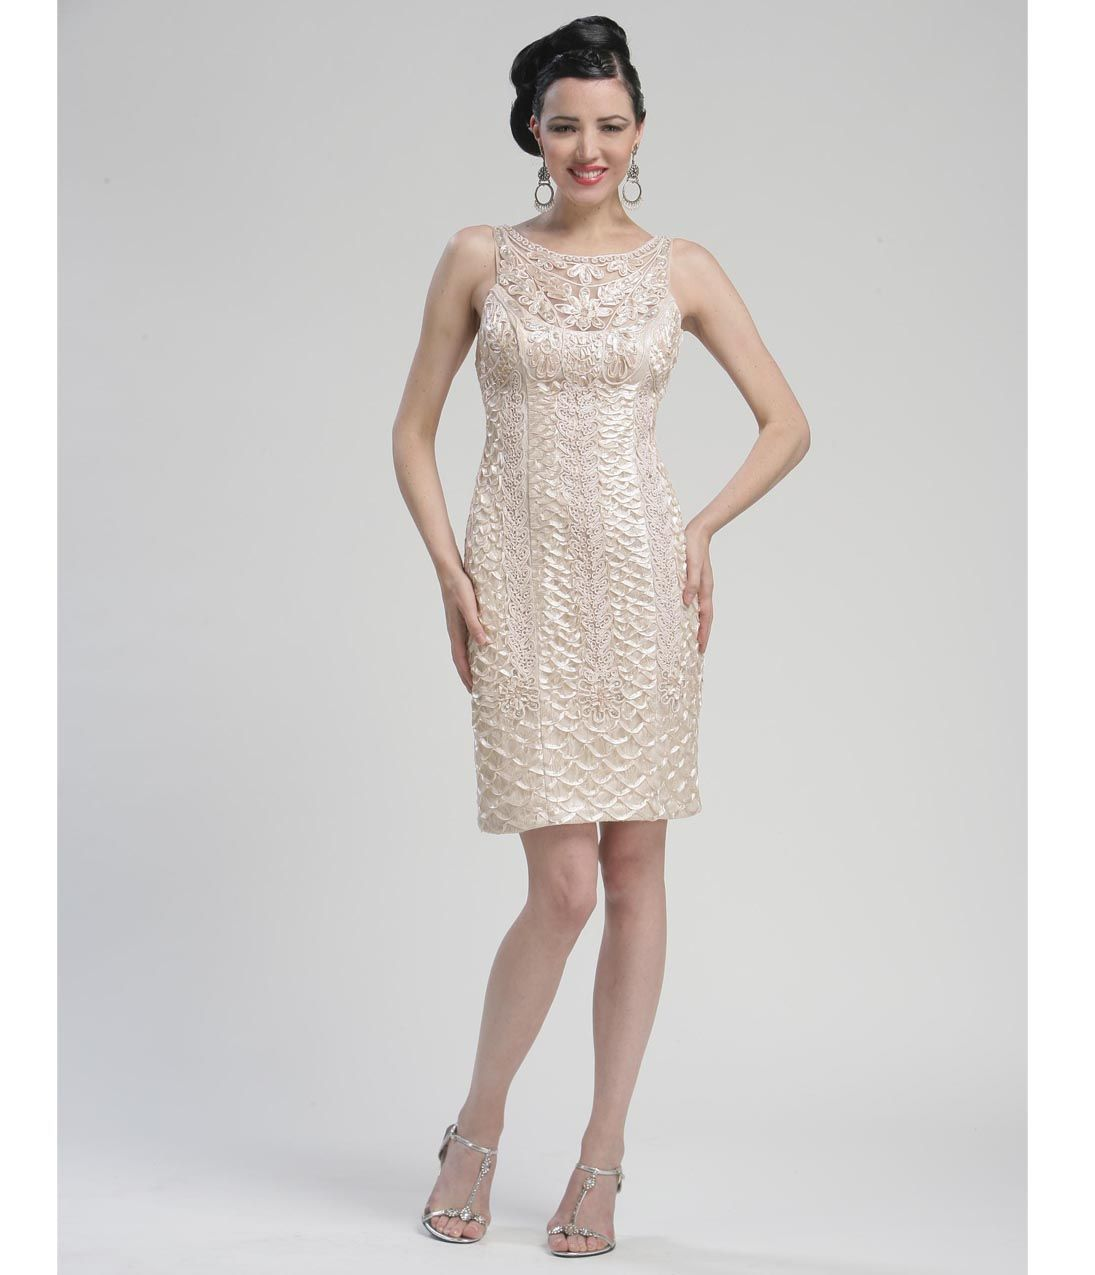 champagne colored dresses | Champagne Lace High Neck Cocktail Dress - Unique Vintage - Prom ...